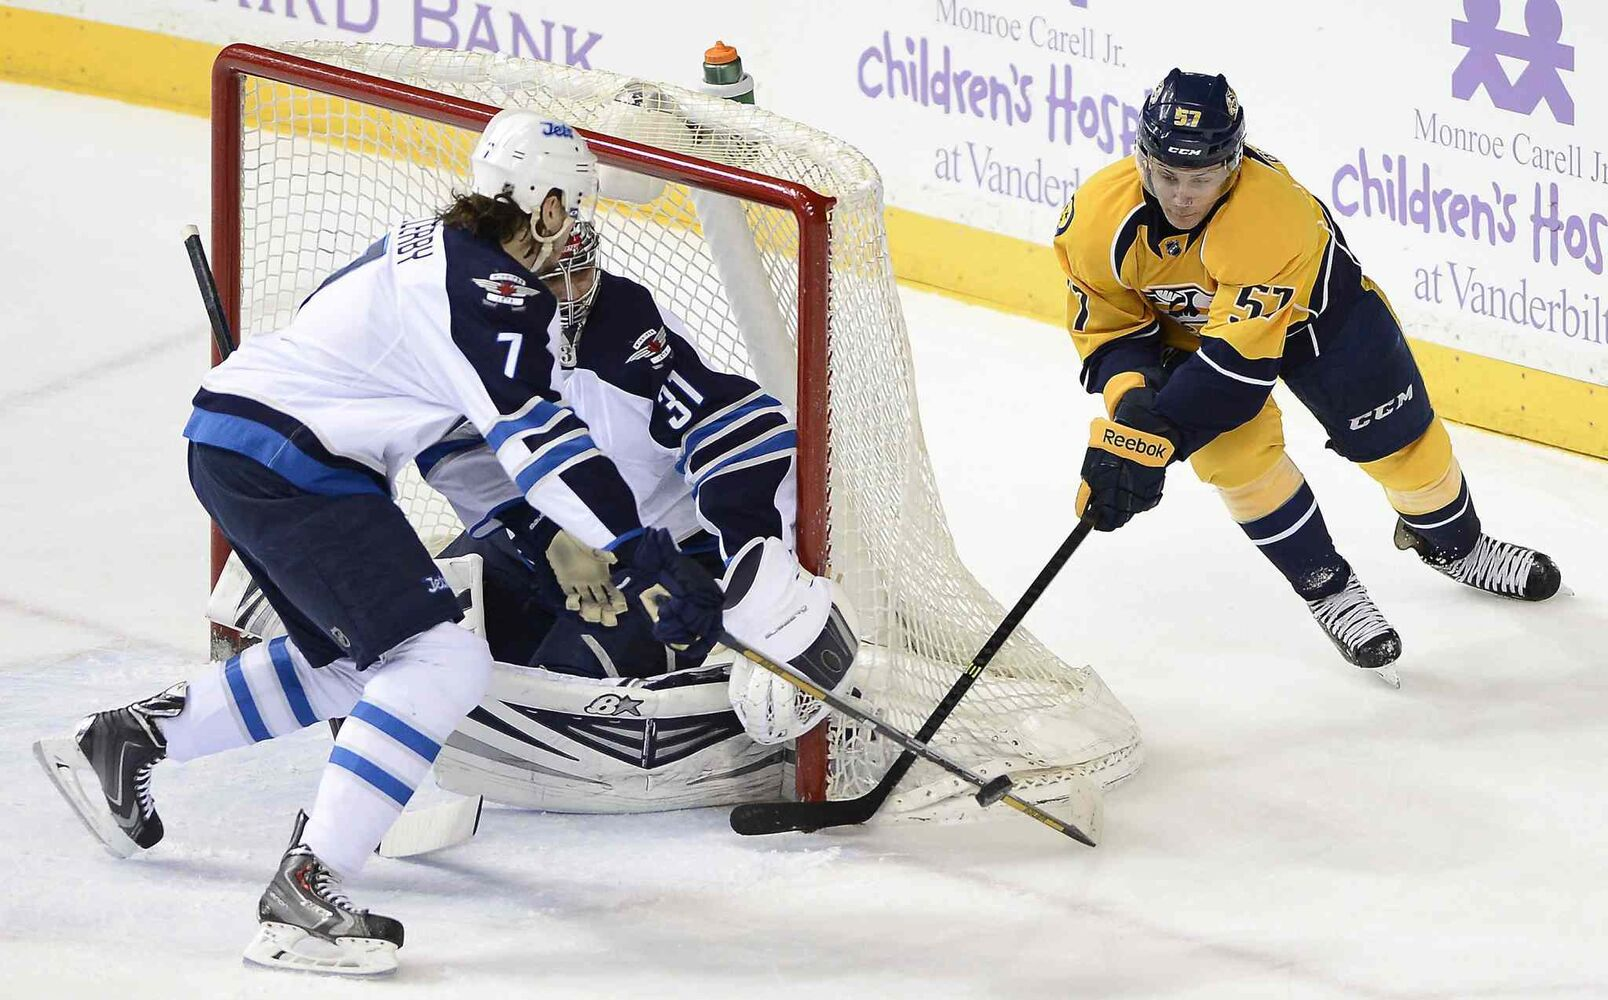 Nashville Predators forward Gabriel Bourque (57) has his first-period shot blocked by Winnipeg Jets defenseman Keaton Ellerby (7) and goalie Ondrej Pavelec (31) on Saturday. (Mark Zaleski / The Associated Press)